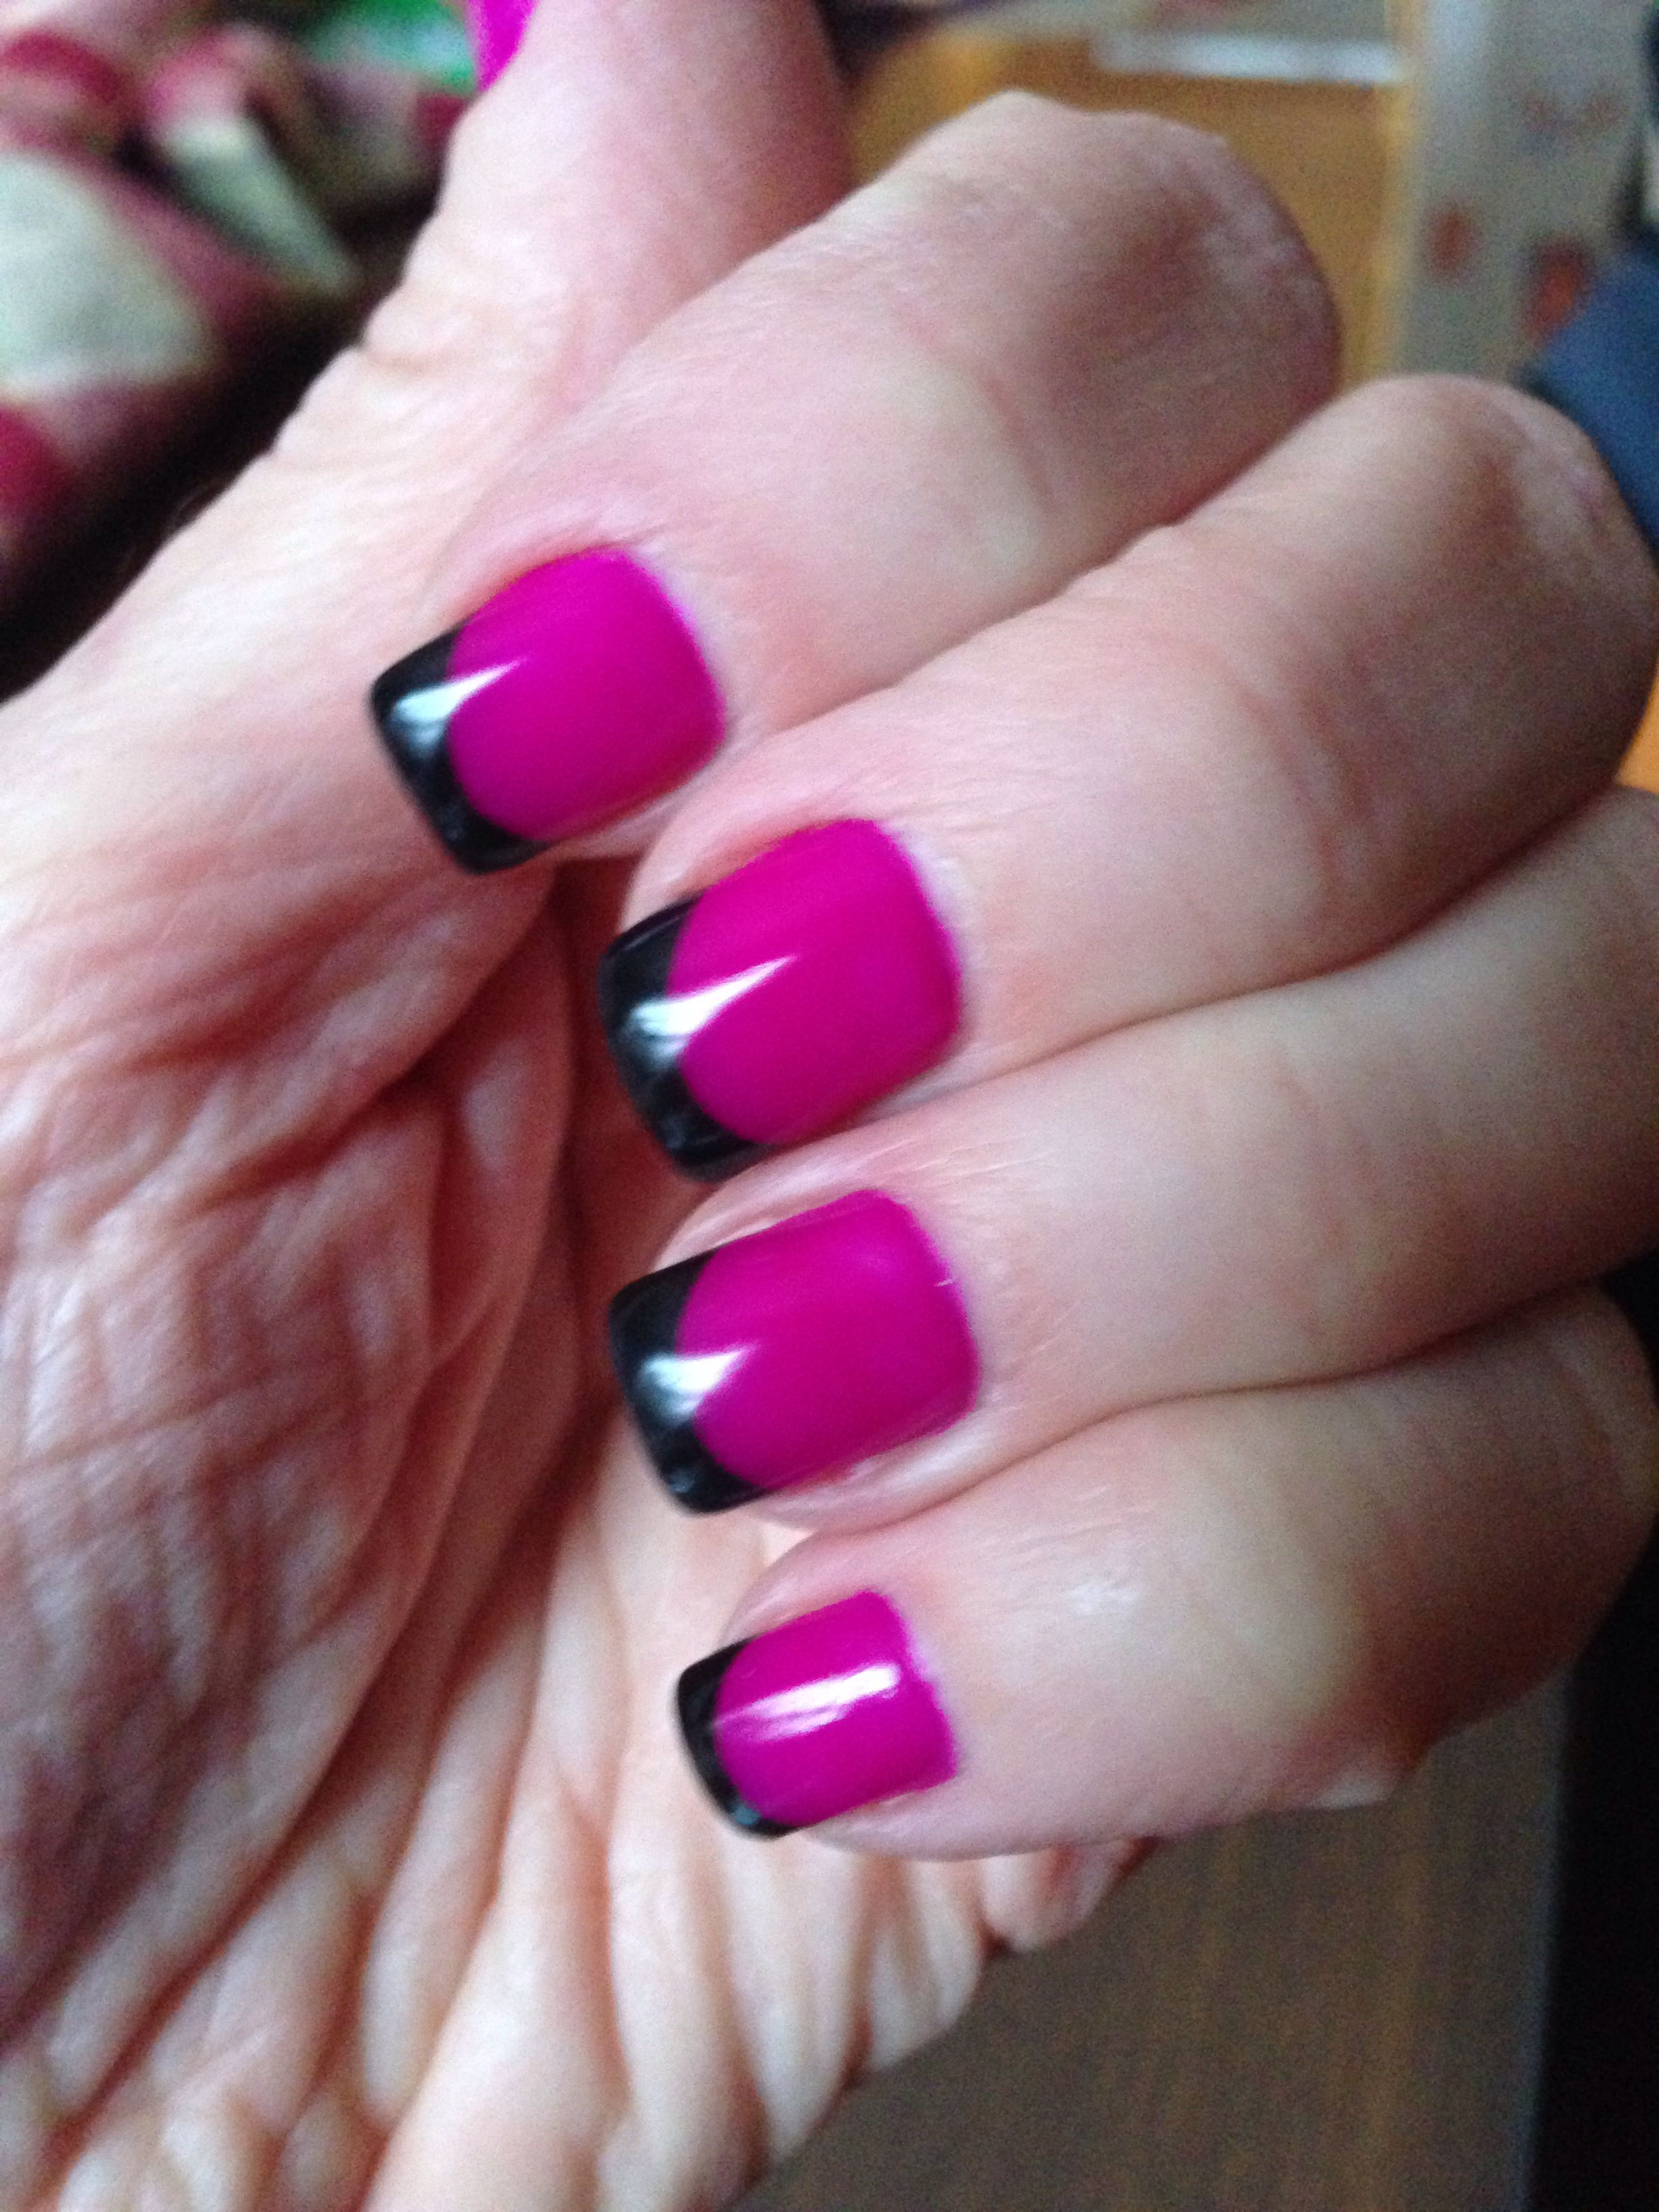 My latest & greatest done by Yen @ Lucky Nails in Westfield, MA ...